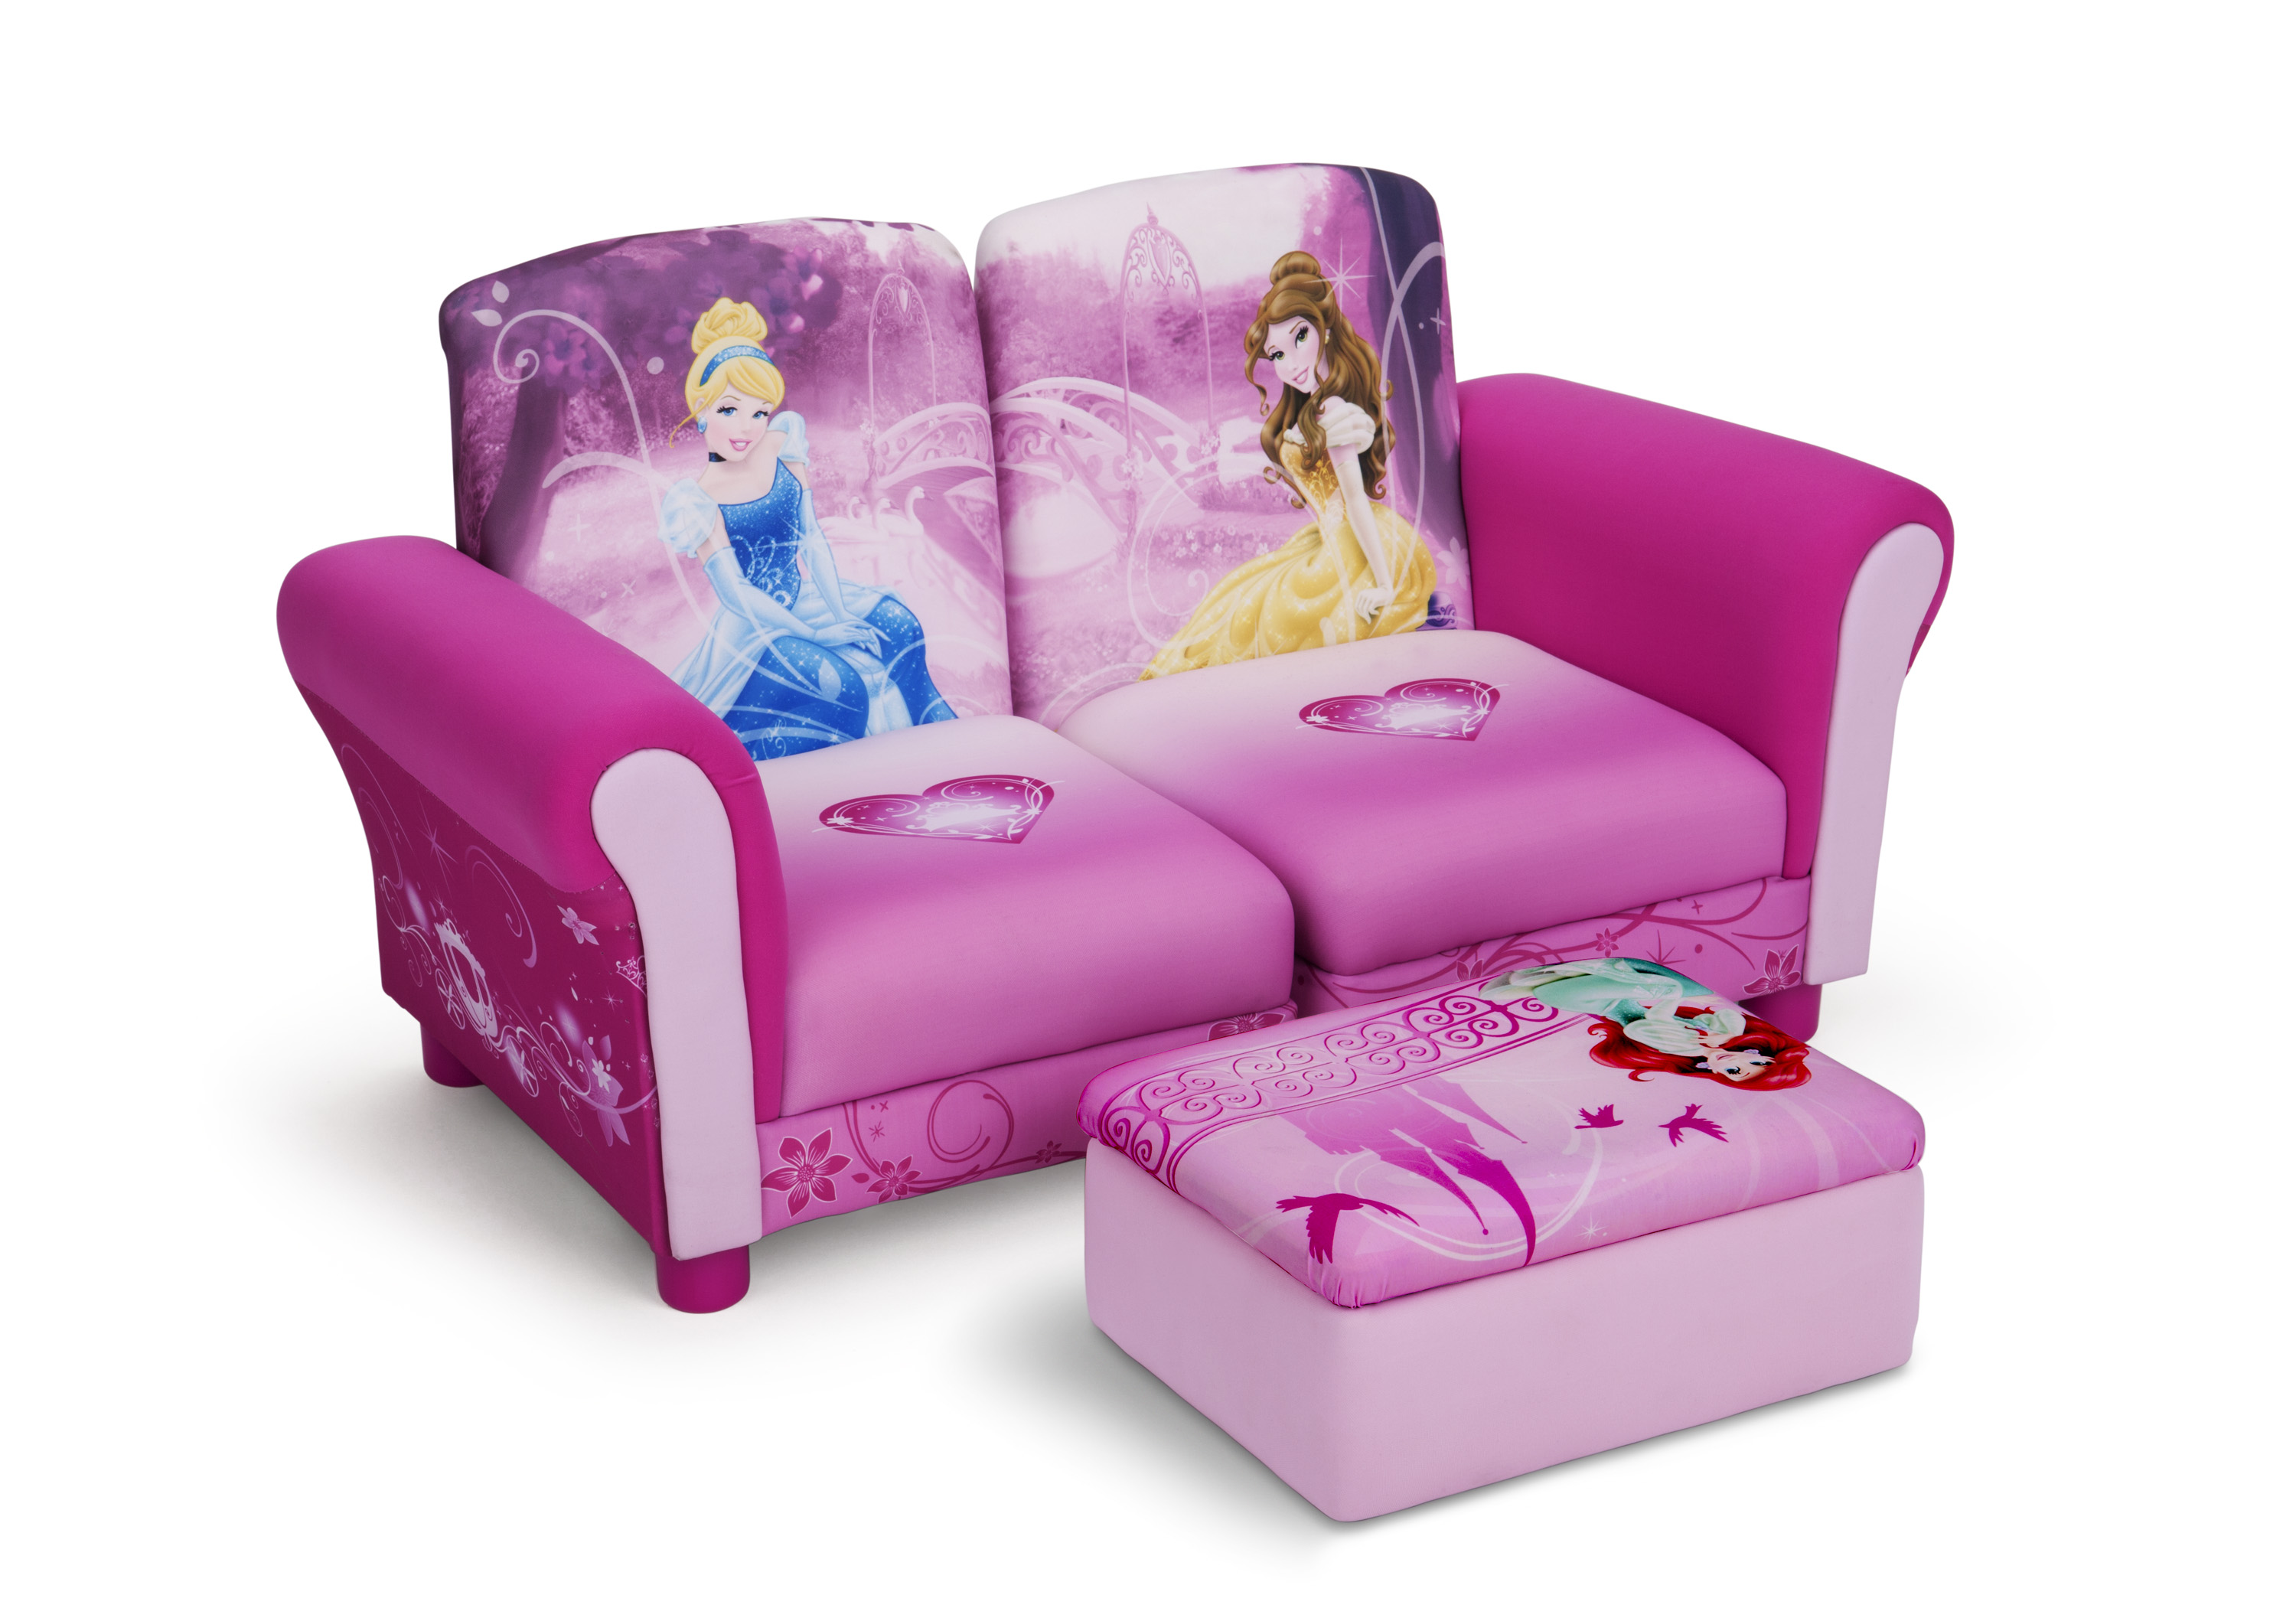 Delta Launches Childrens Upholstered Chairs  The Toy Book